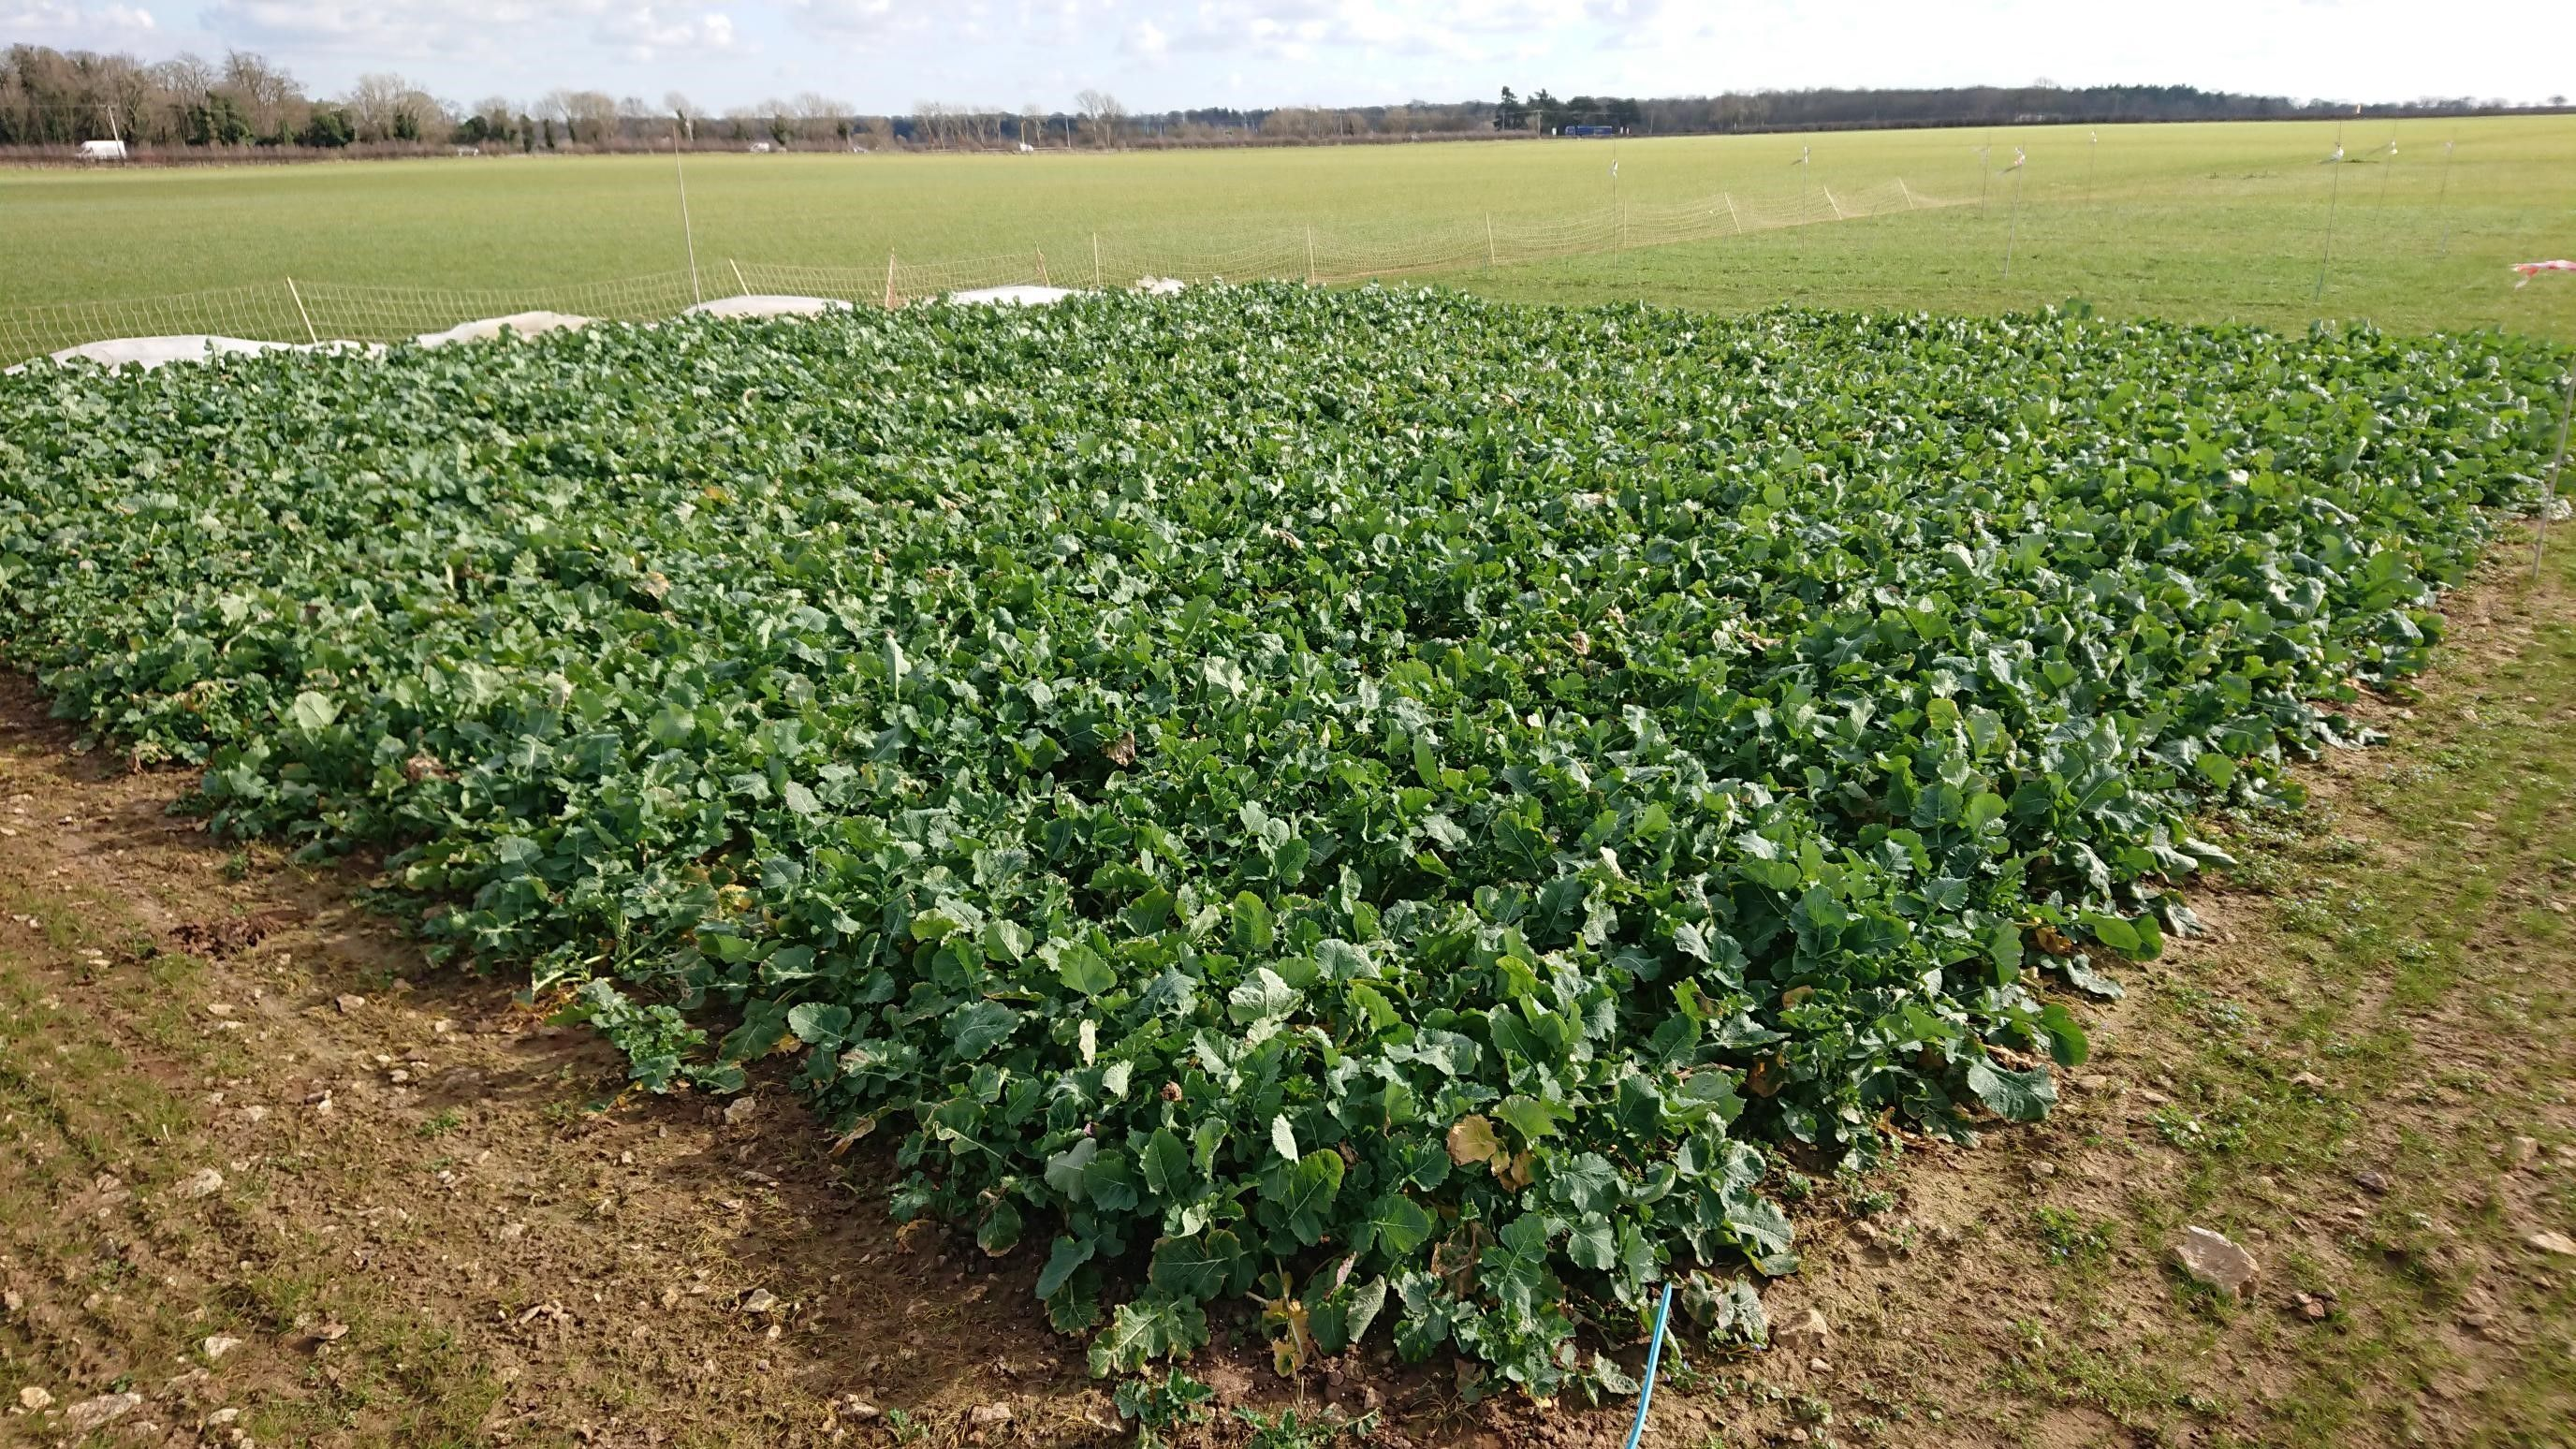 Cereals 2021 crop plots overwinter well